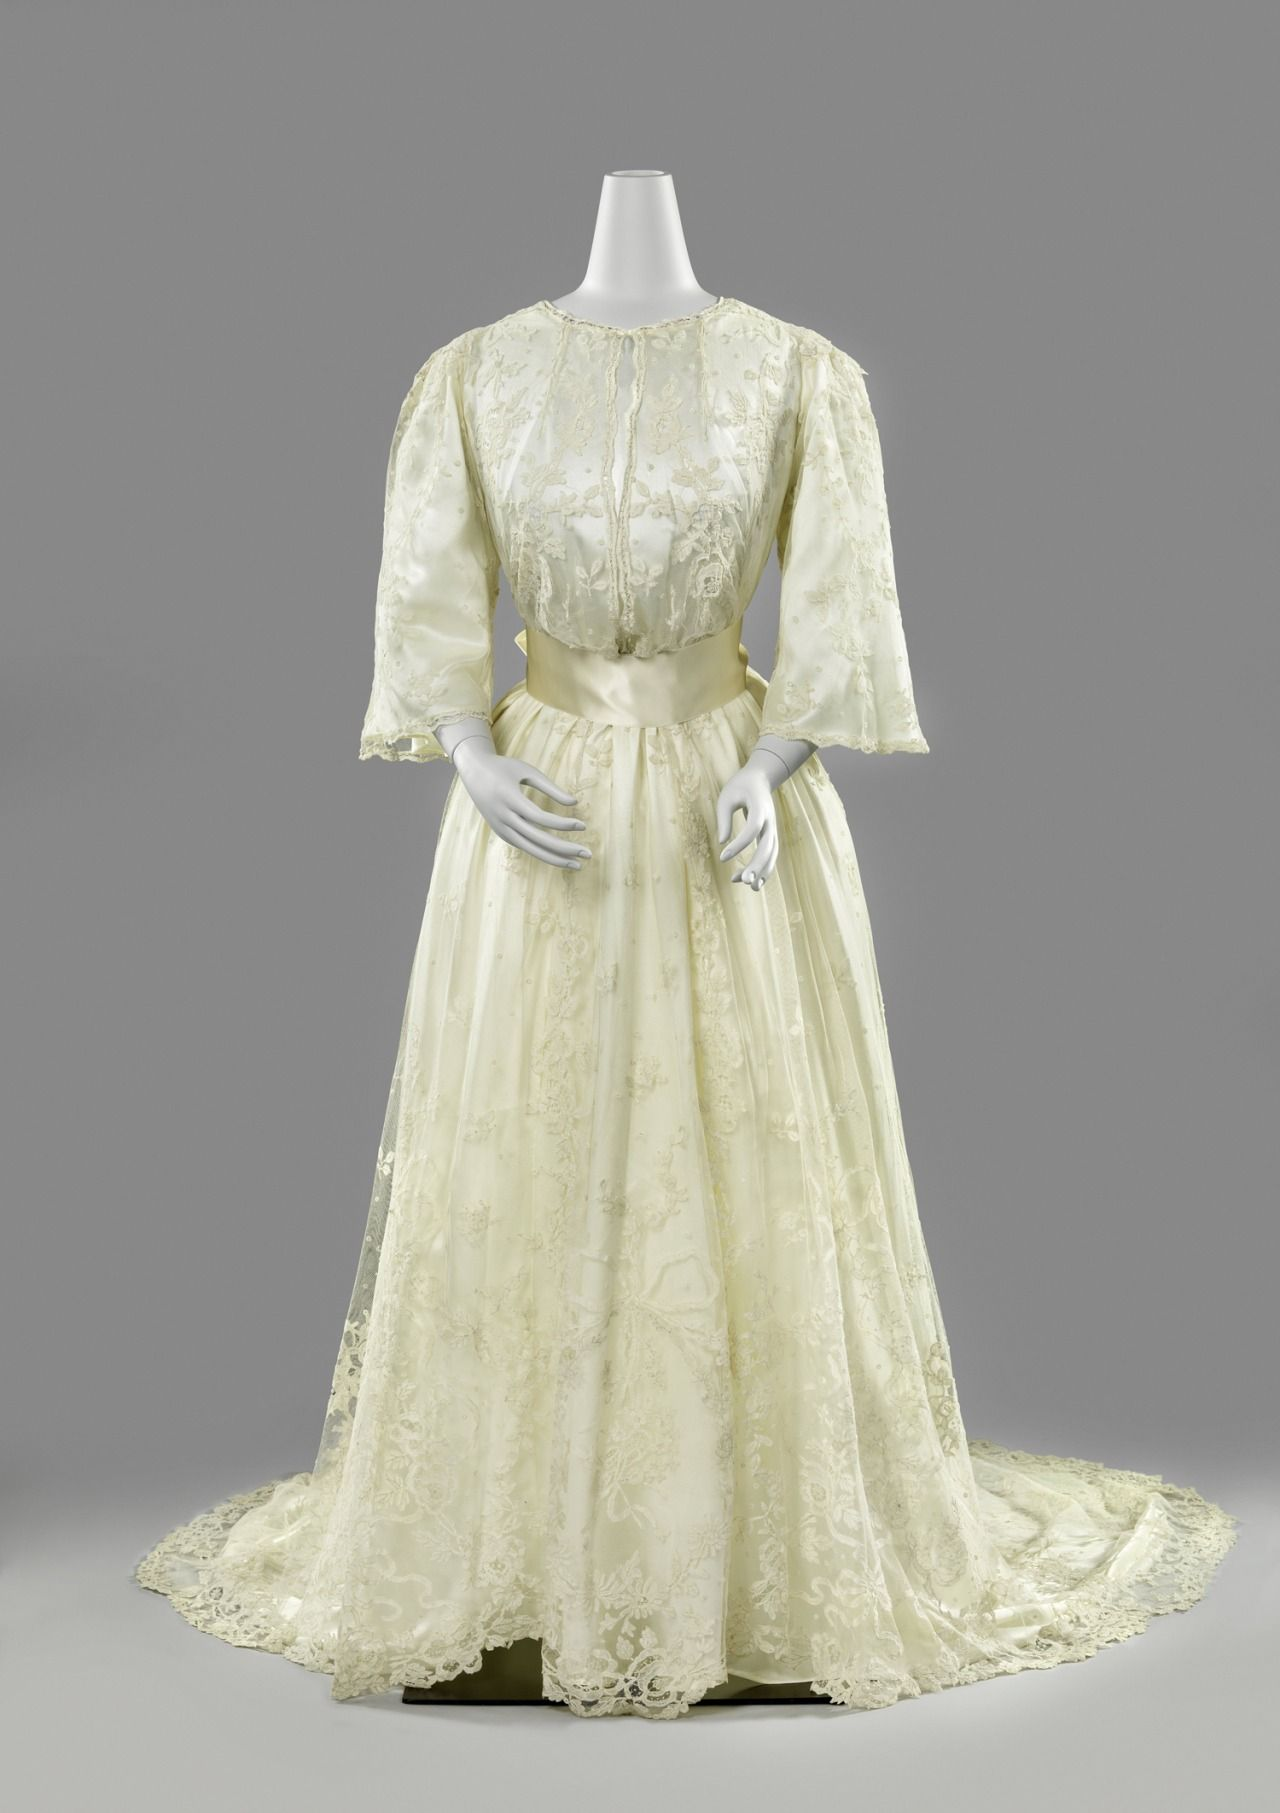 Antique cream wedding dress  Fripperies and Fobs  Photo  Antique  Vintage Dress  Pinterest